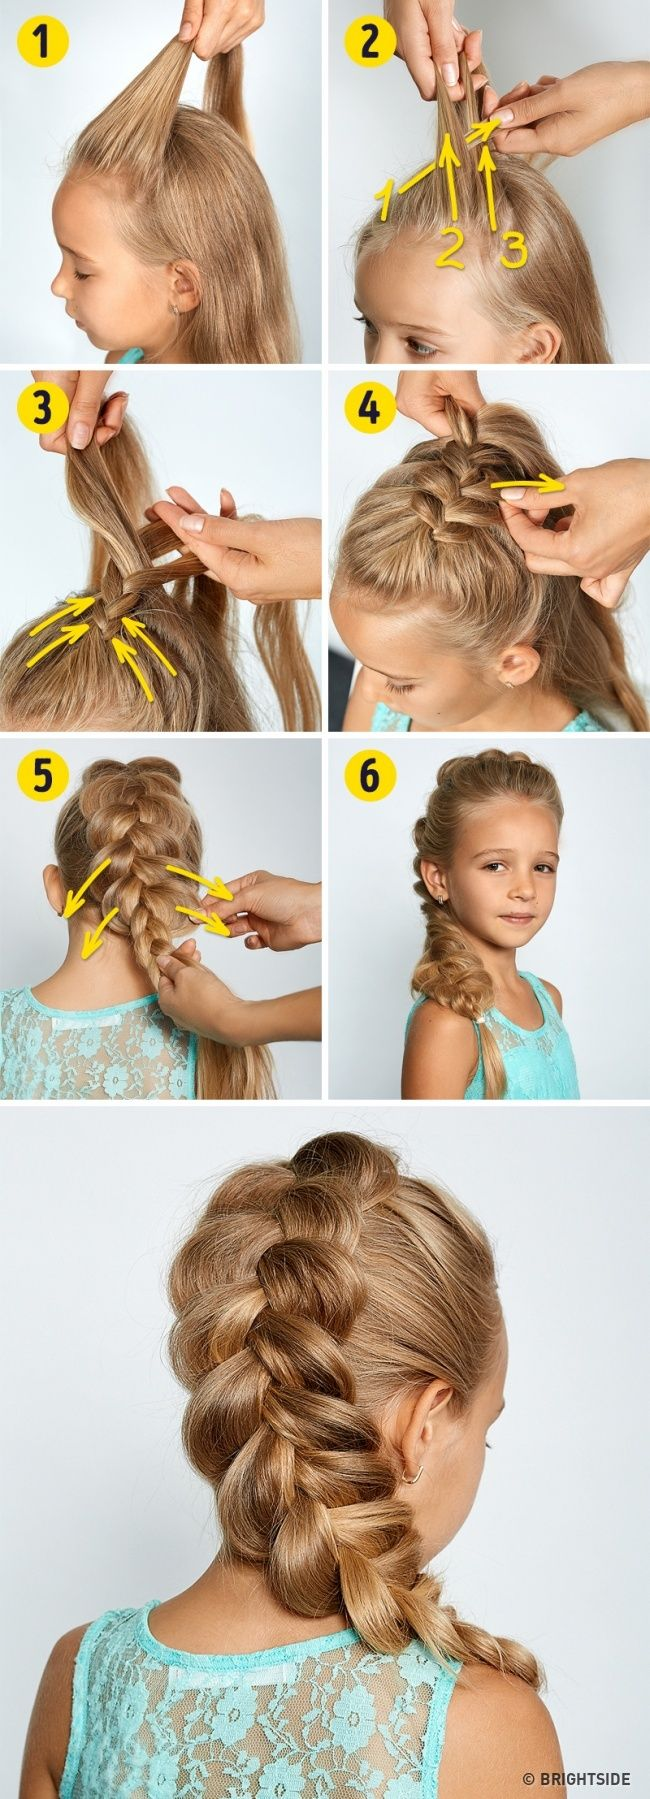 best girl hairstyles images on pinterest hair dos hair ideas